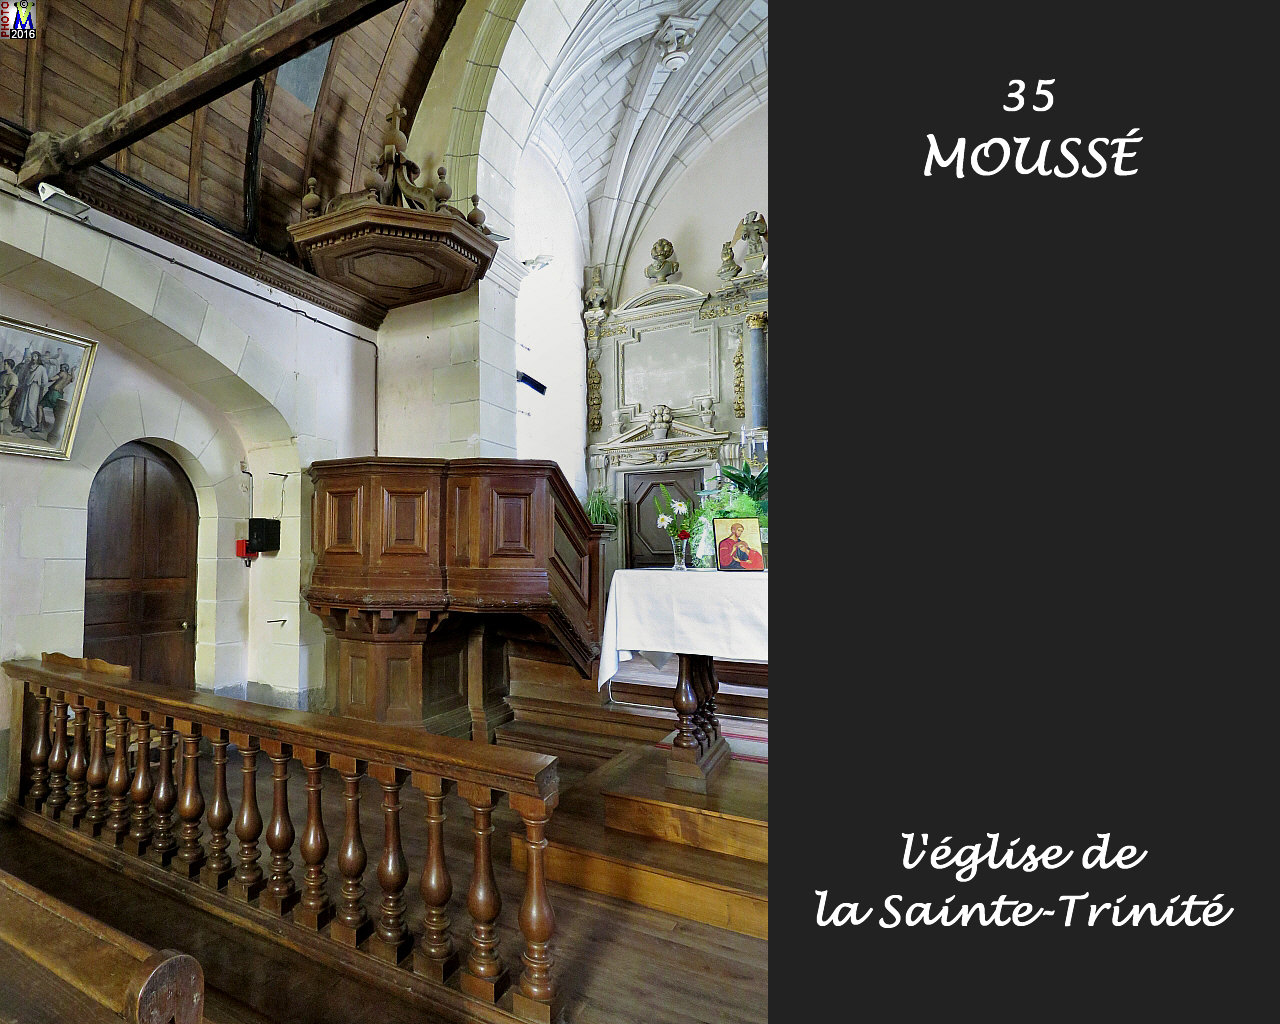 35MOUSSE_eglise_1140.jpg